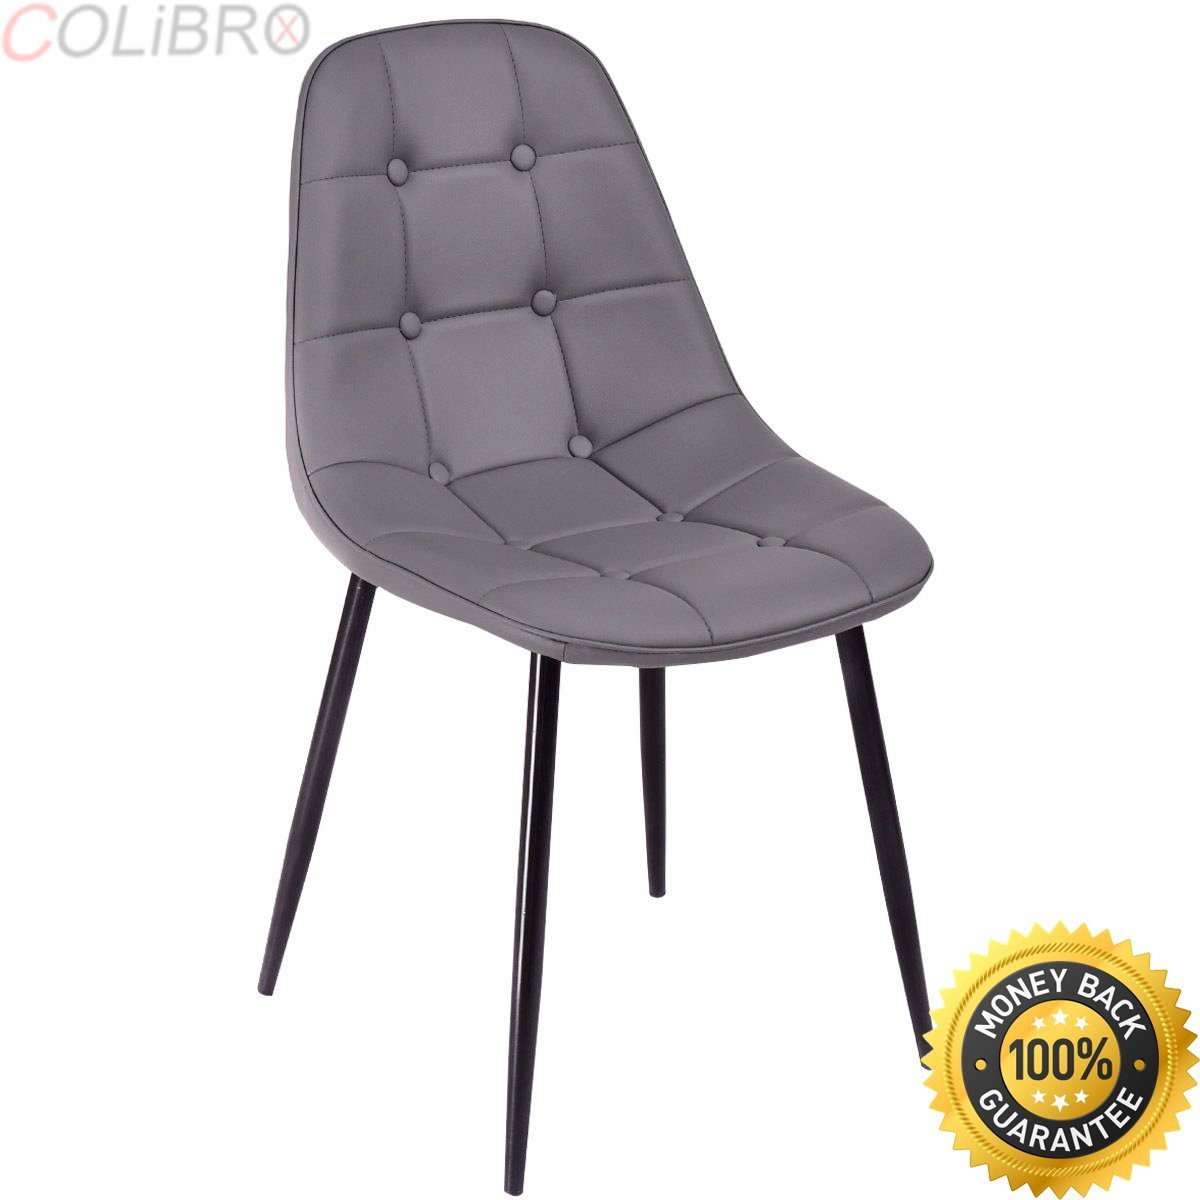 a8a1ce345d05 COLIBROX--Set of 4 Dining Chair PU Leather Armless Metel Leg Tufted Accent  Chair